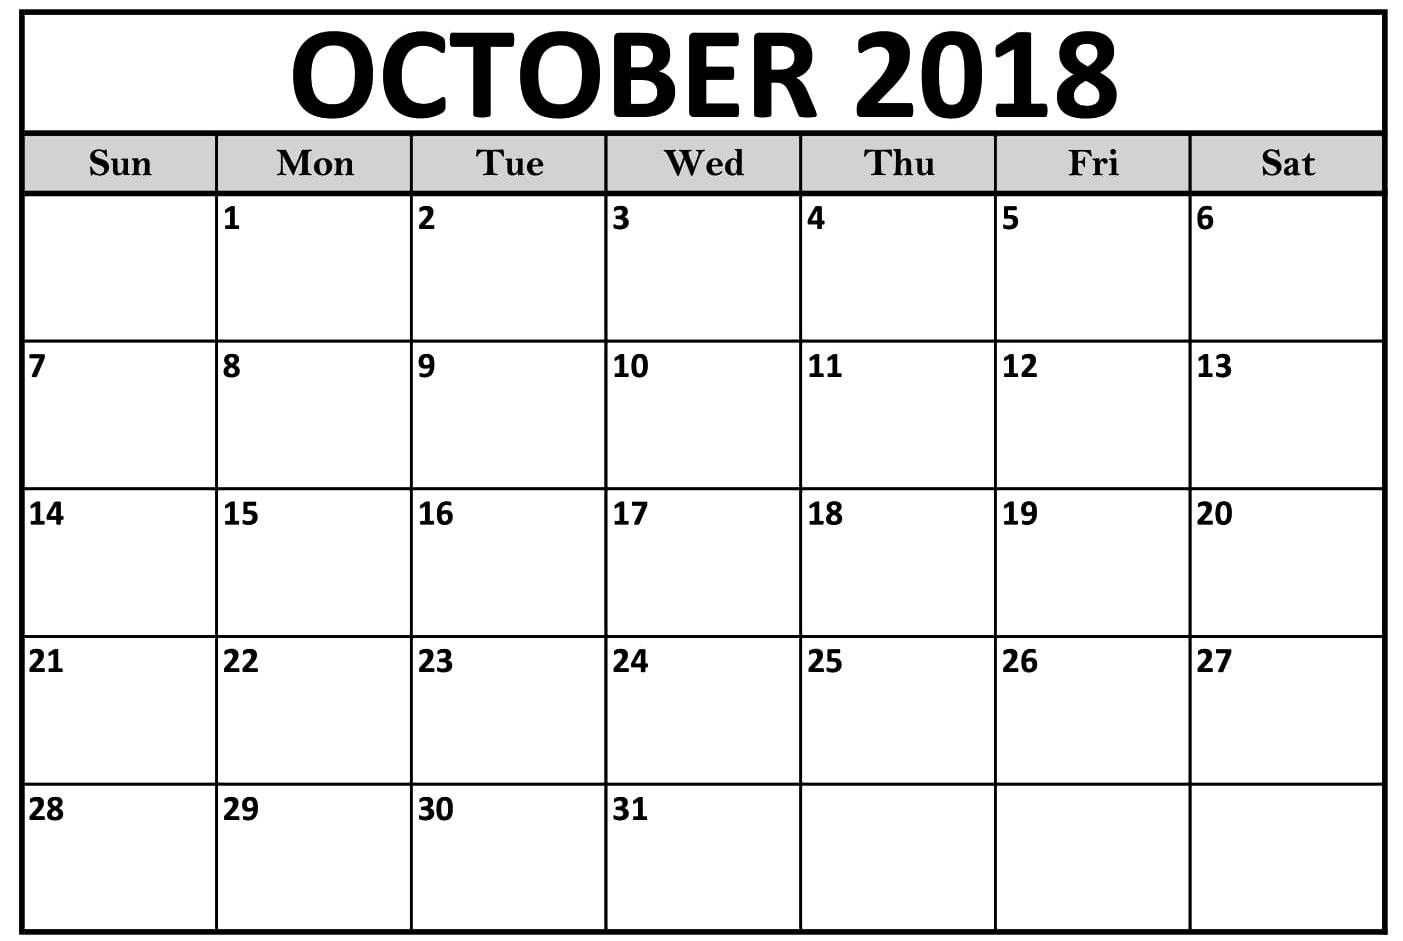 calendar october 2018 by week